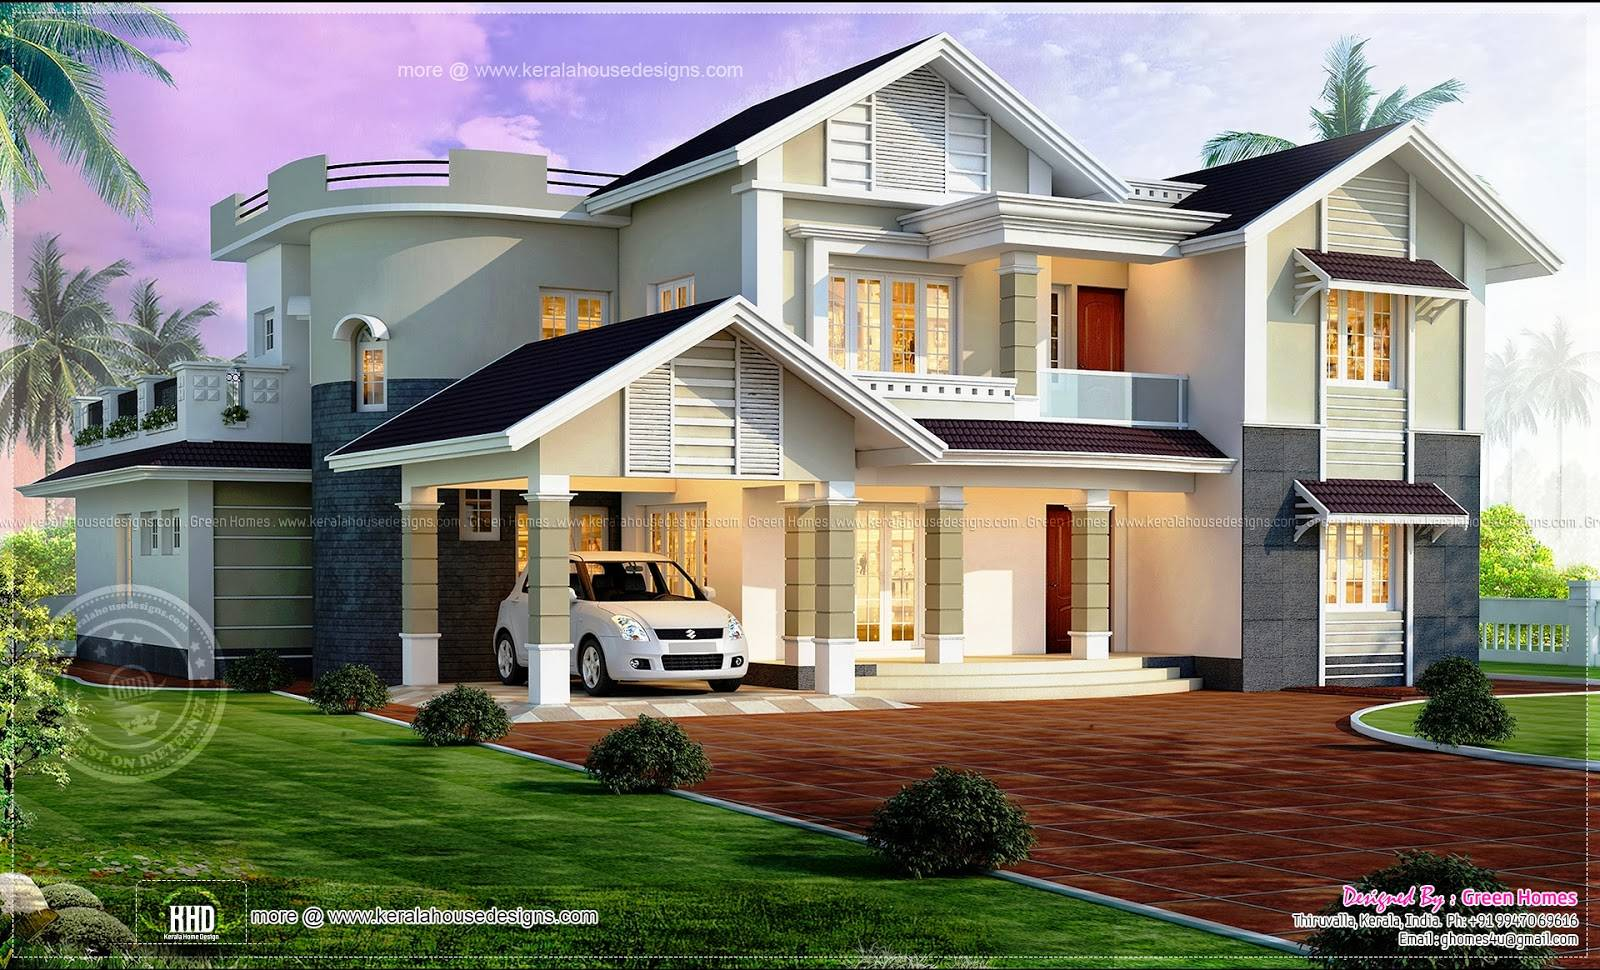 Excellent Beautiful Homes Designs Bedroom Home Kerala House Plans 167481